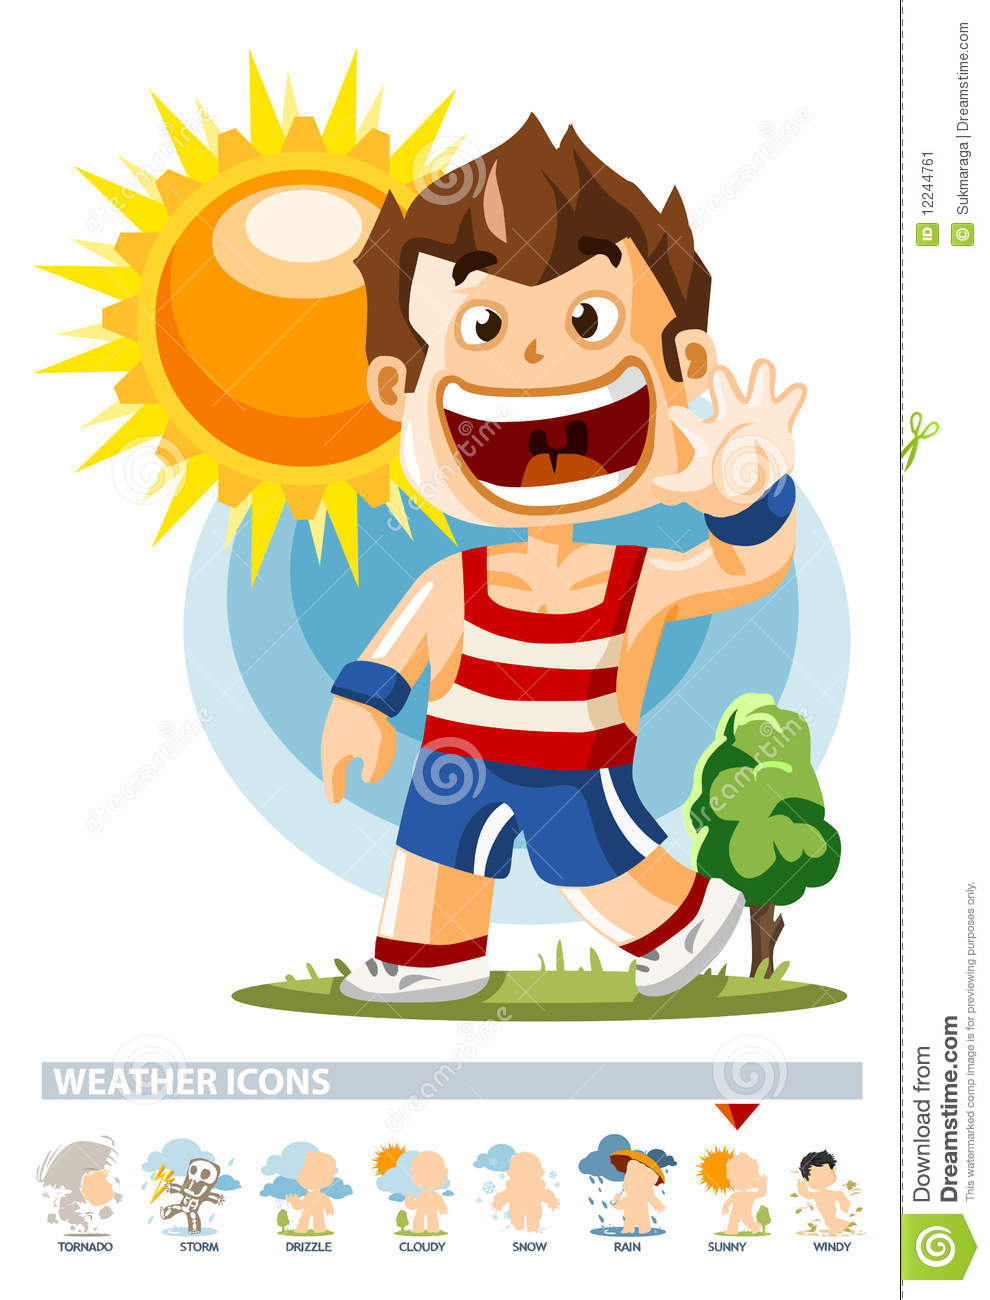 Sunny. Weather Icon with People illustration in Detailed Vector.